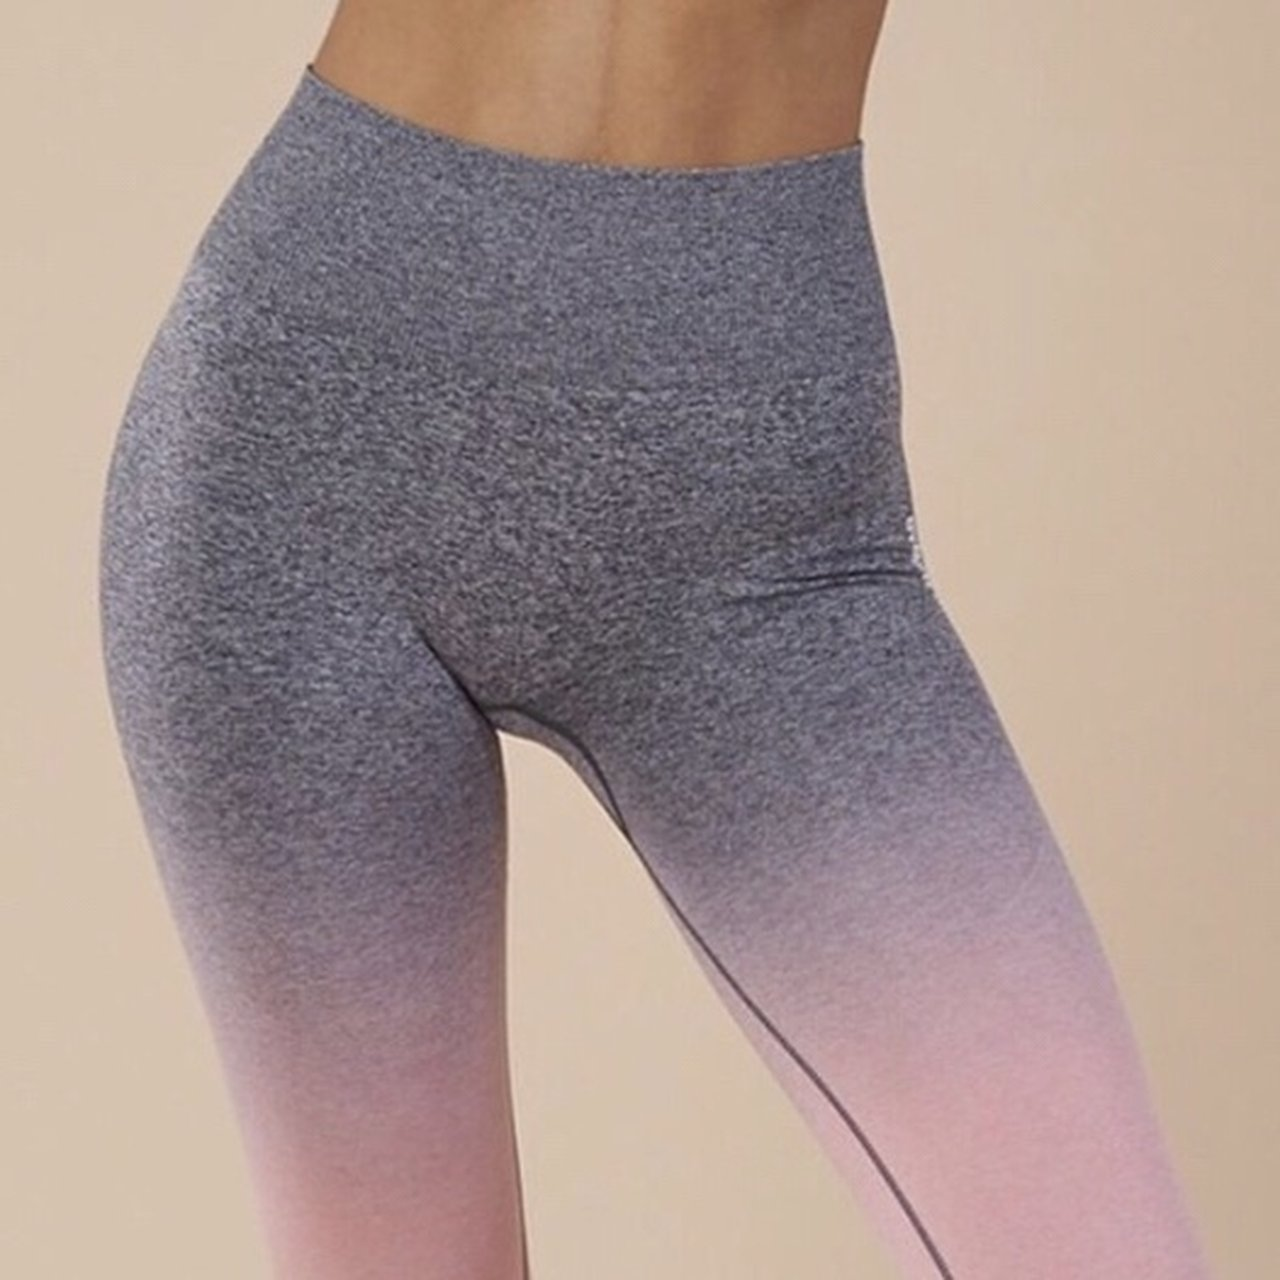 574b7f72caa7fa @bvbygoth. 7 months ago. Ypsilanti, United States. Gymshark Ombre Seamless  Leggings - Peach Pink/Charcoal ...